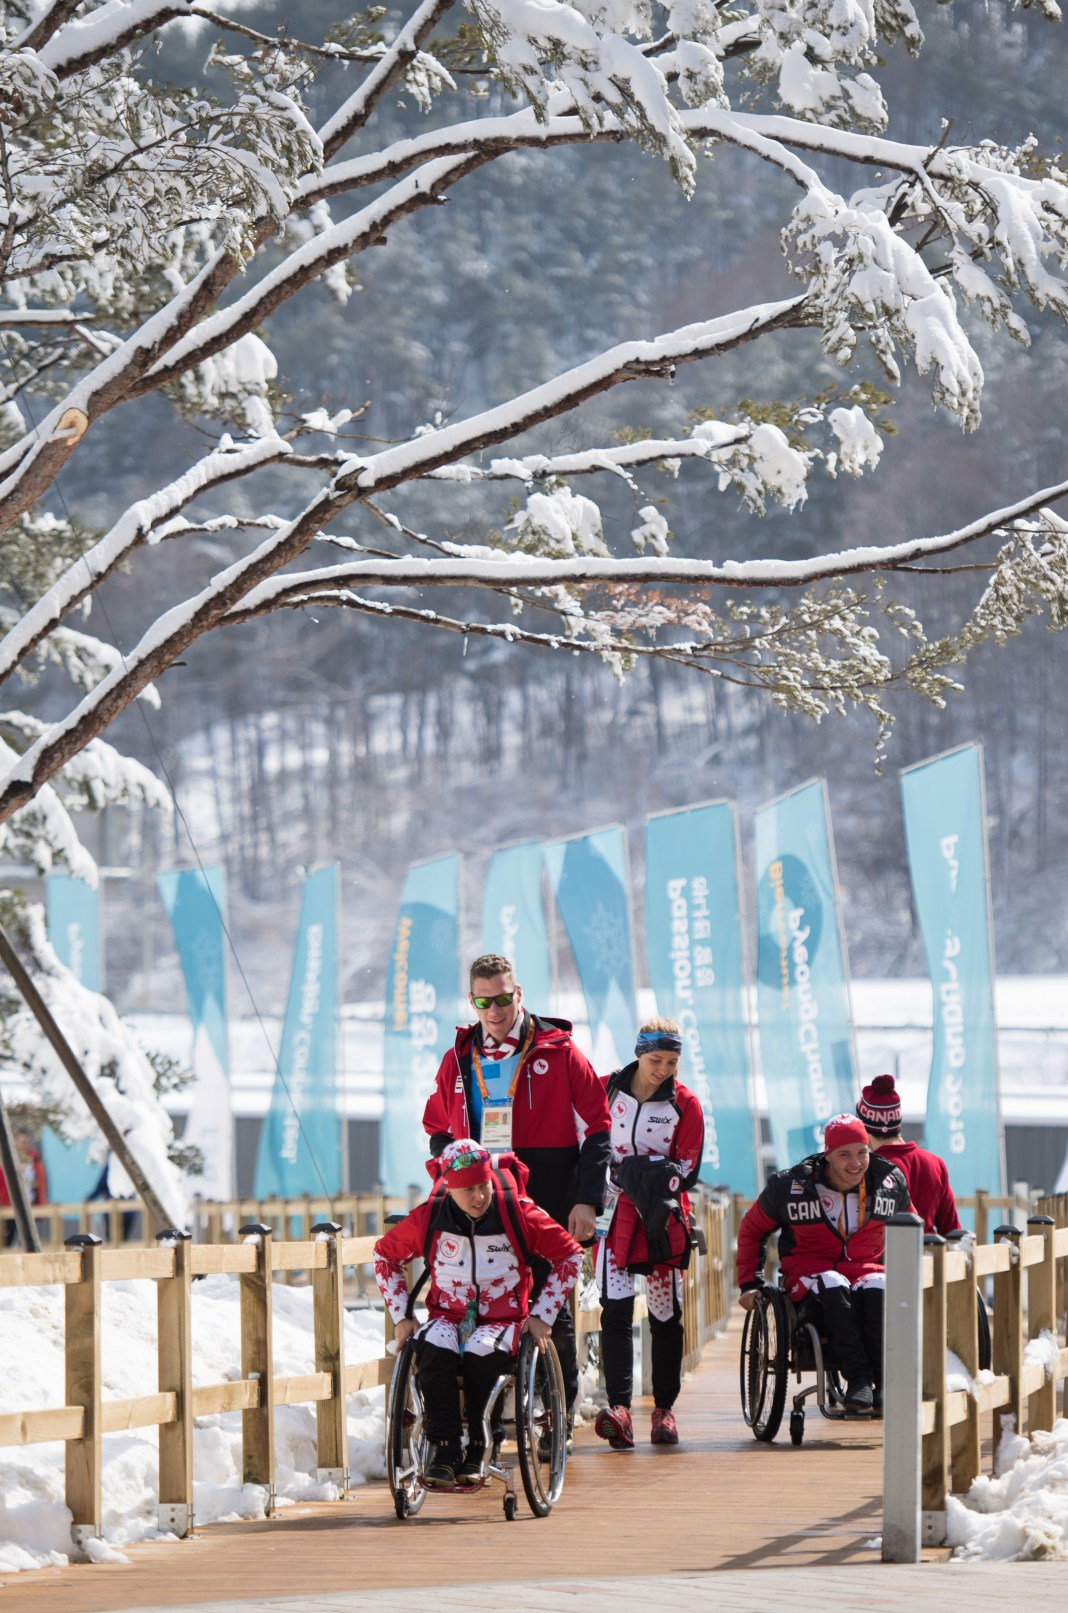 Cindy Oullet CAN, Natalie Wilkie CAN and Ethan Hess CAN arrive at the Paralympic Village. The Paralympic Winter Games, PyeongChang, South Korea, Tuesday 6th March 2018. Photo: Joel Marklund for OIS/IOC. Handout image supplied by OIS/IOC